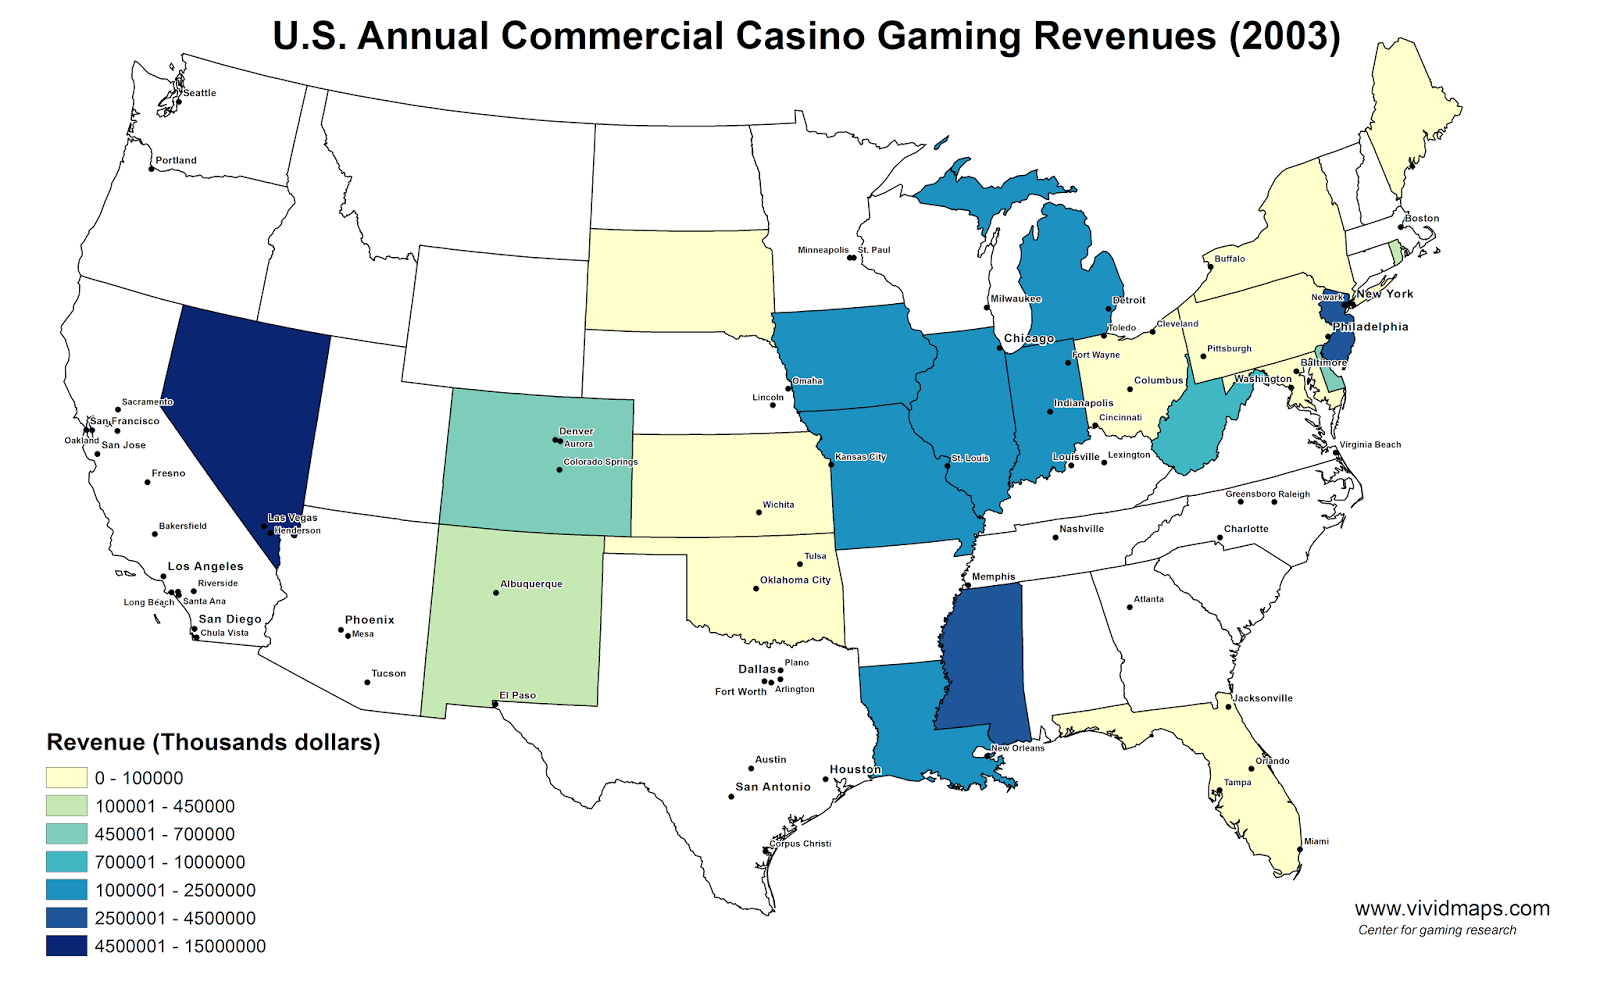 U.S. Annual Commercial Casino Gaming Revenues (2003)